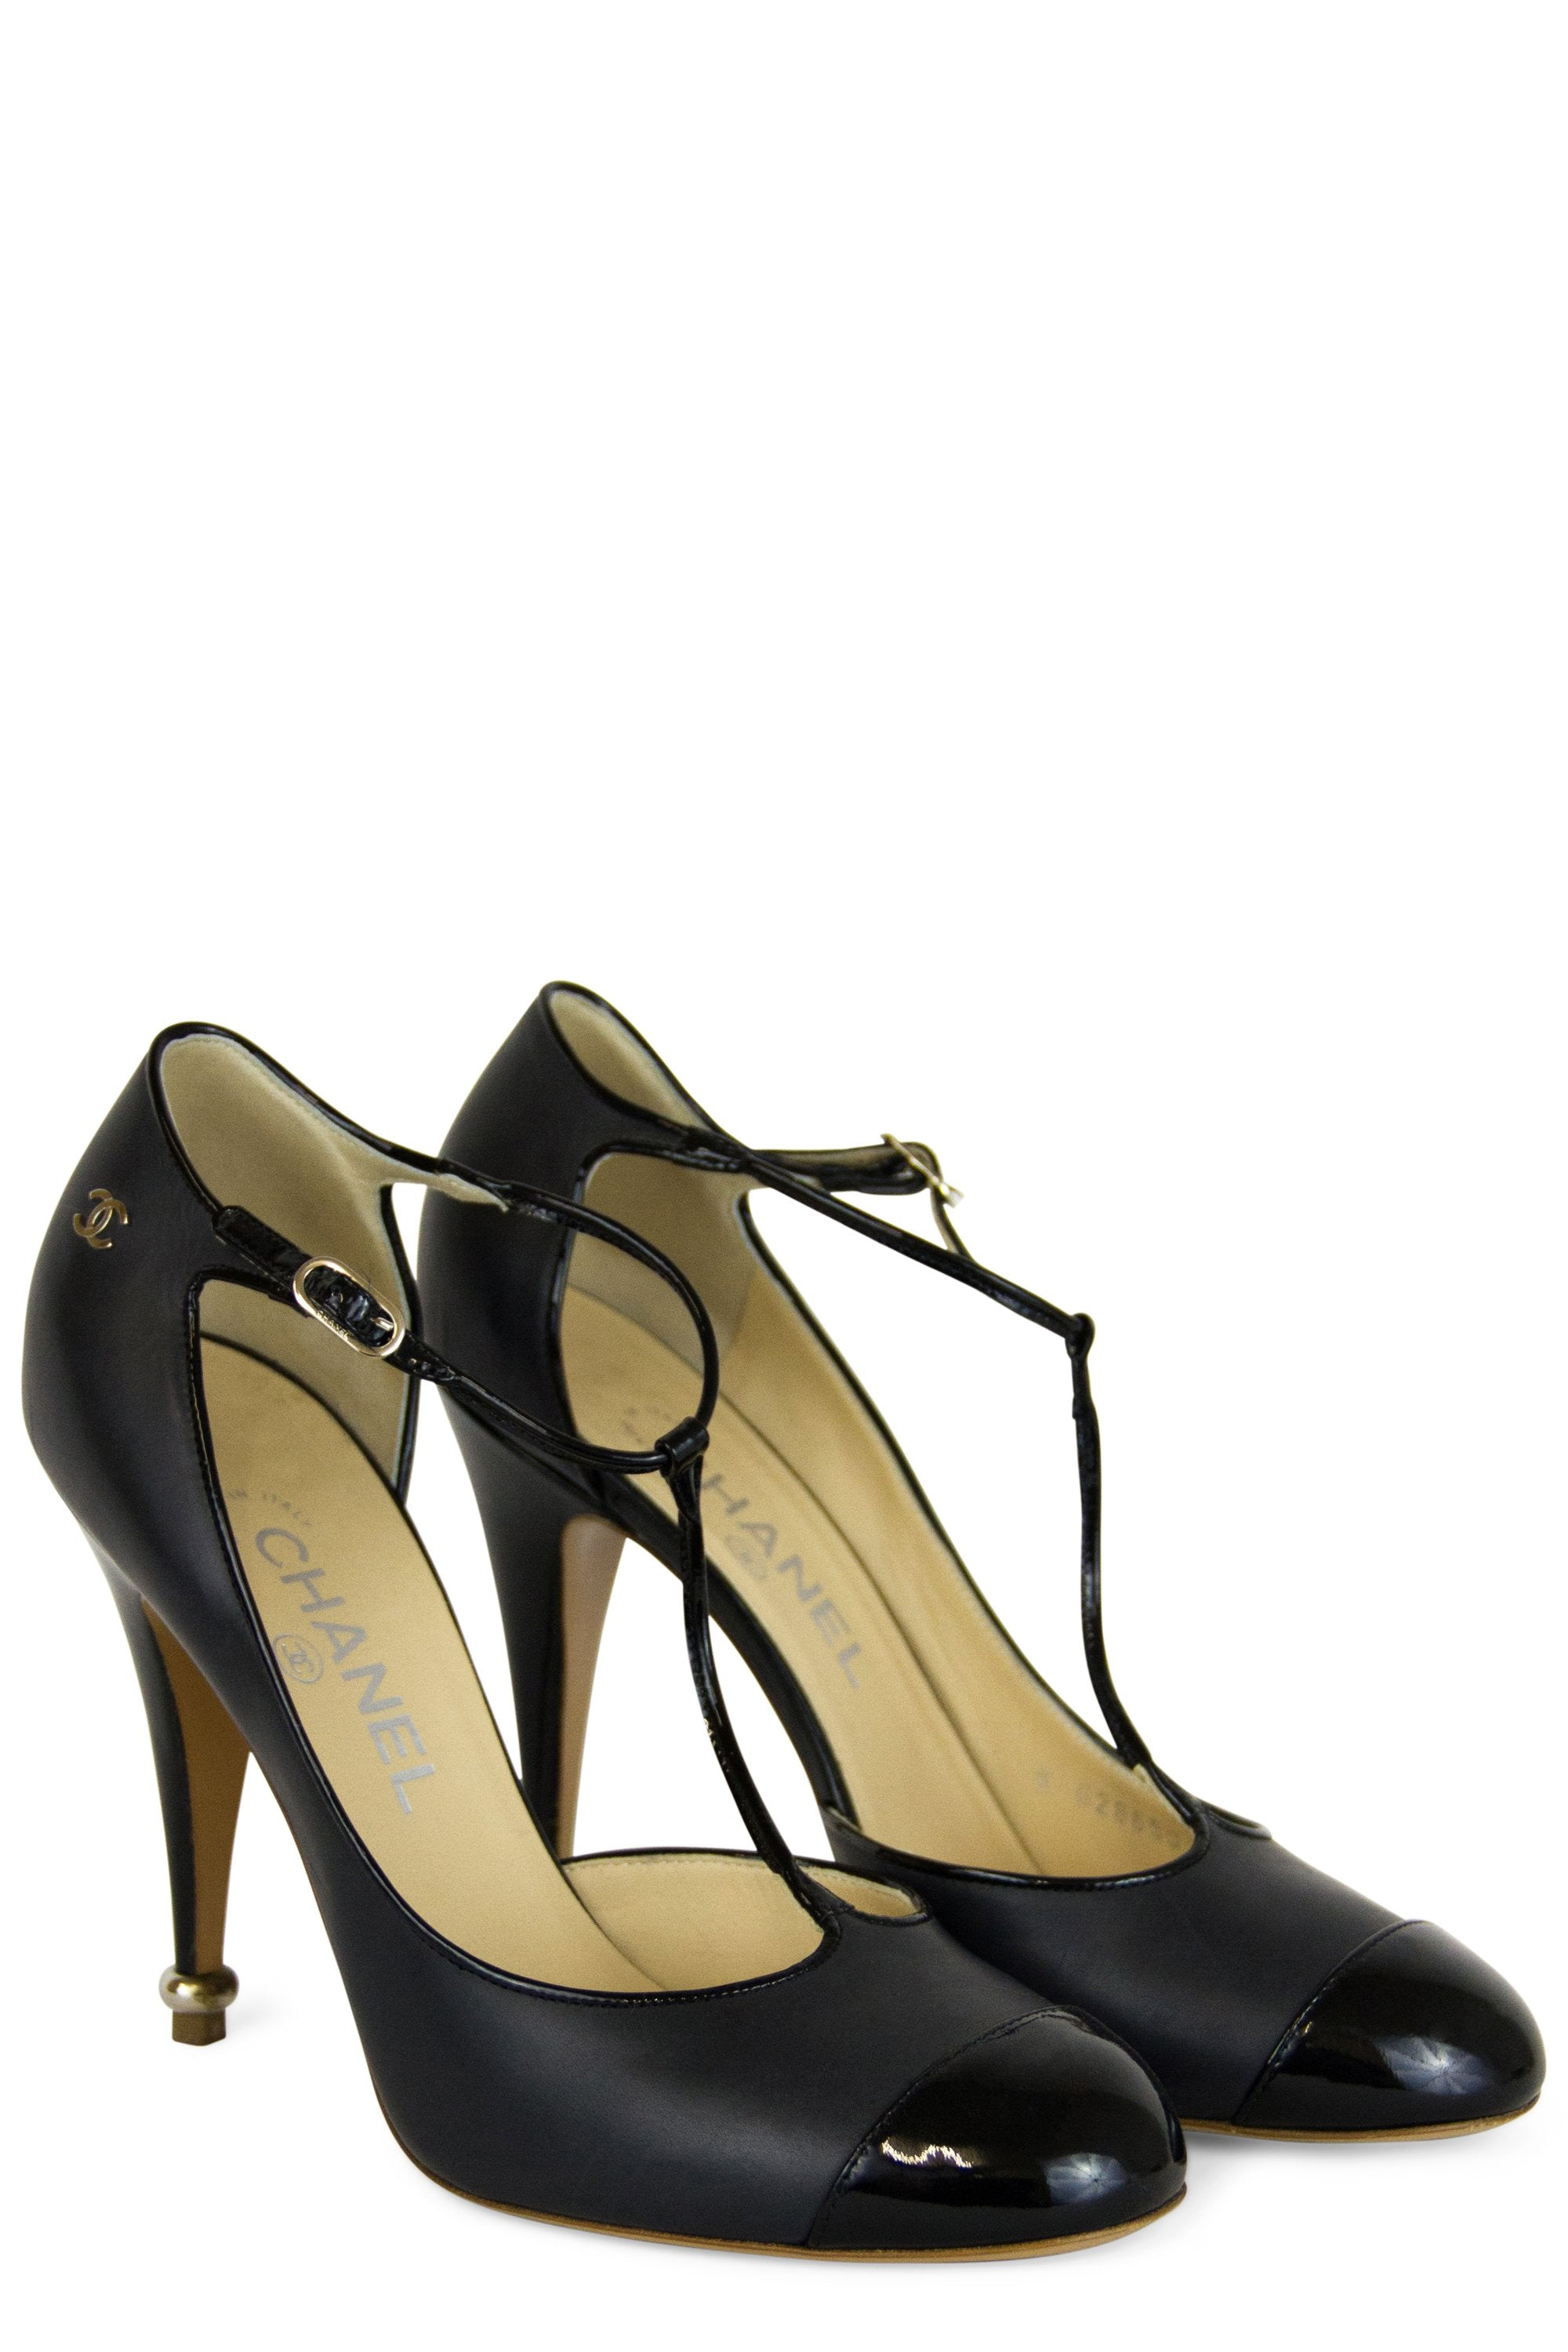 Chanel Mary Jane Cap Toe T-Strap Pumps Seitenansicht